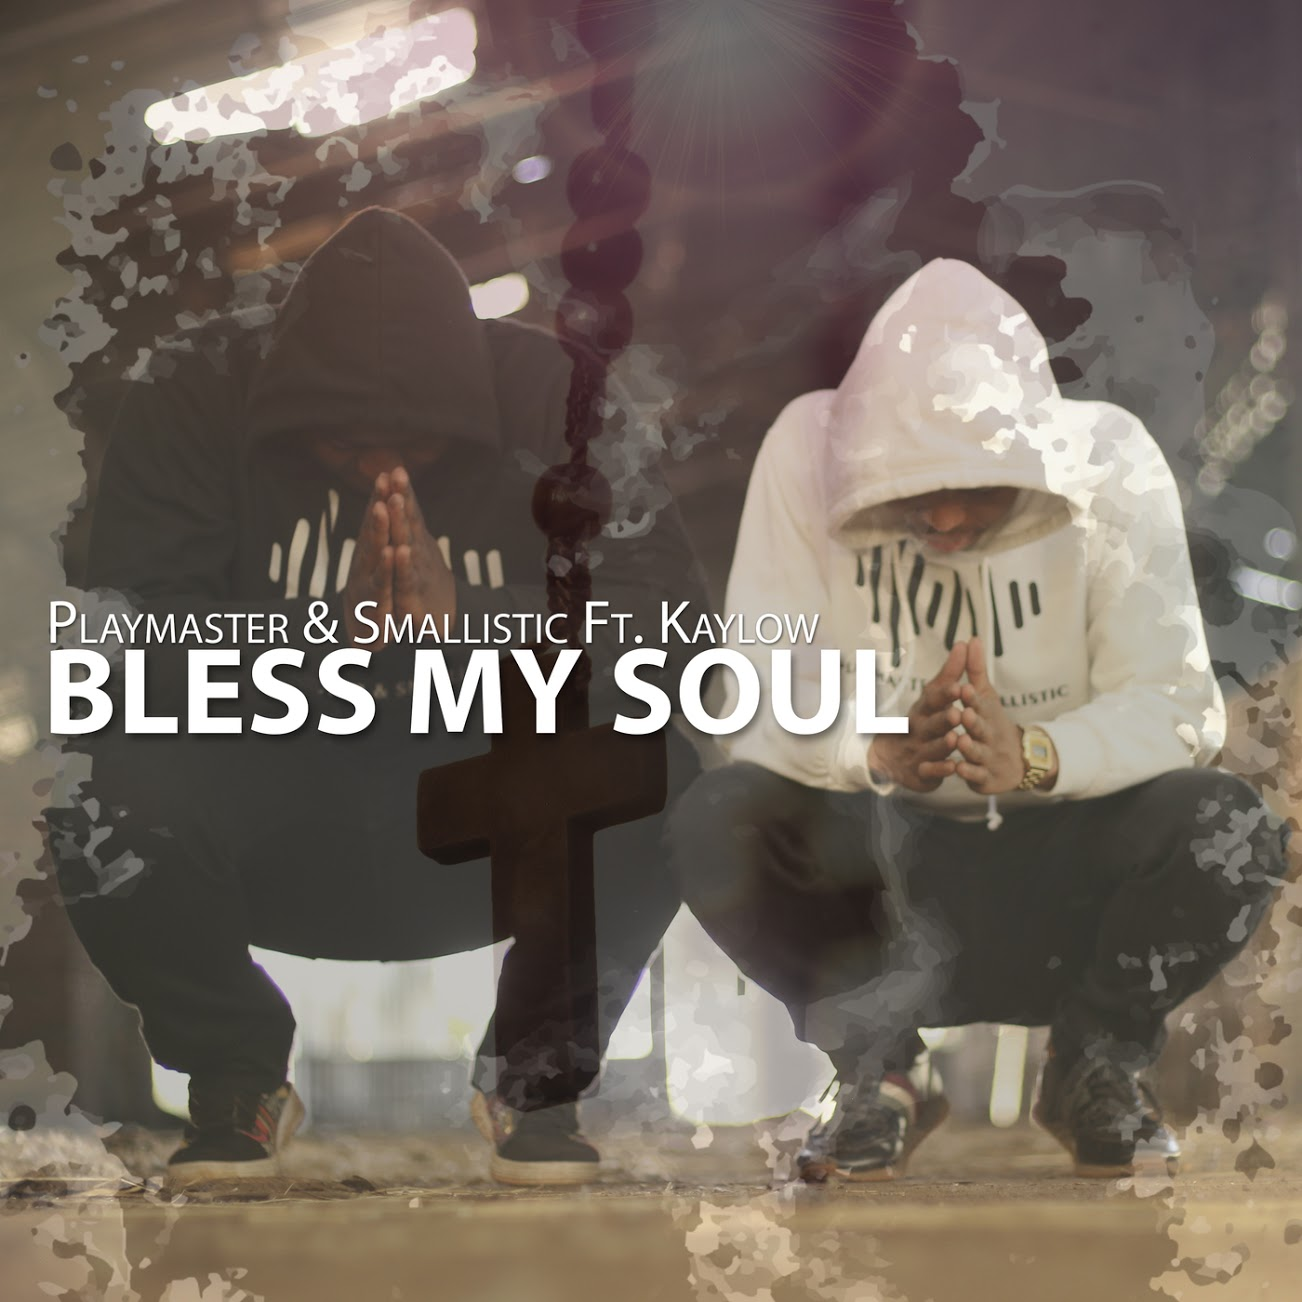 PlayMaster Bless My Soul - Smallistic & Playmaster – Bless My Soul (feat. Kaylow)